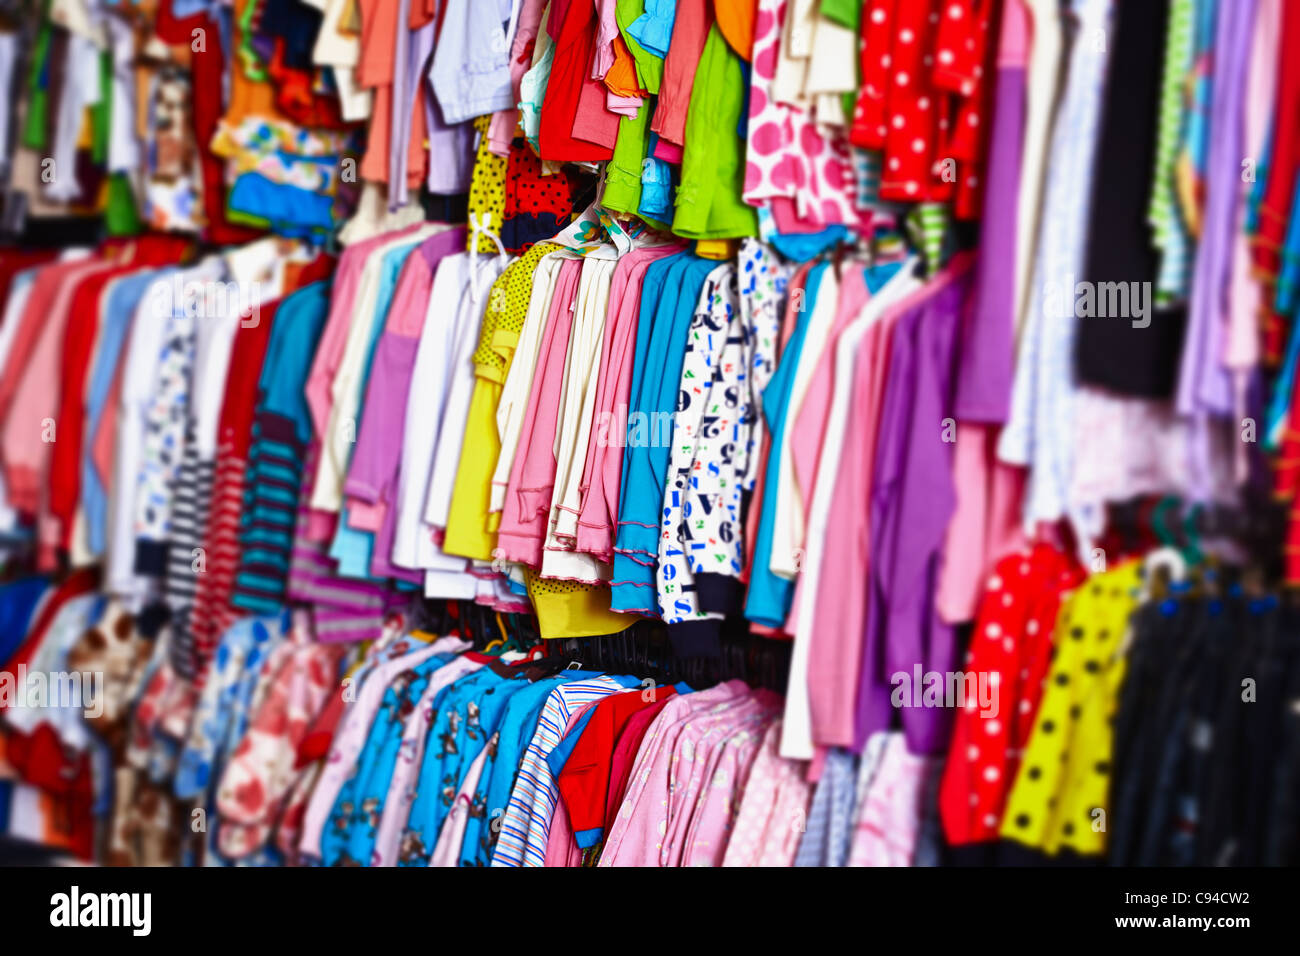 Colorful Baby Clothes Hanging On Hangers In A Store Stock Photo